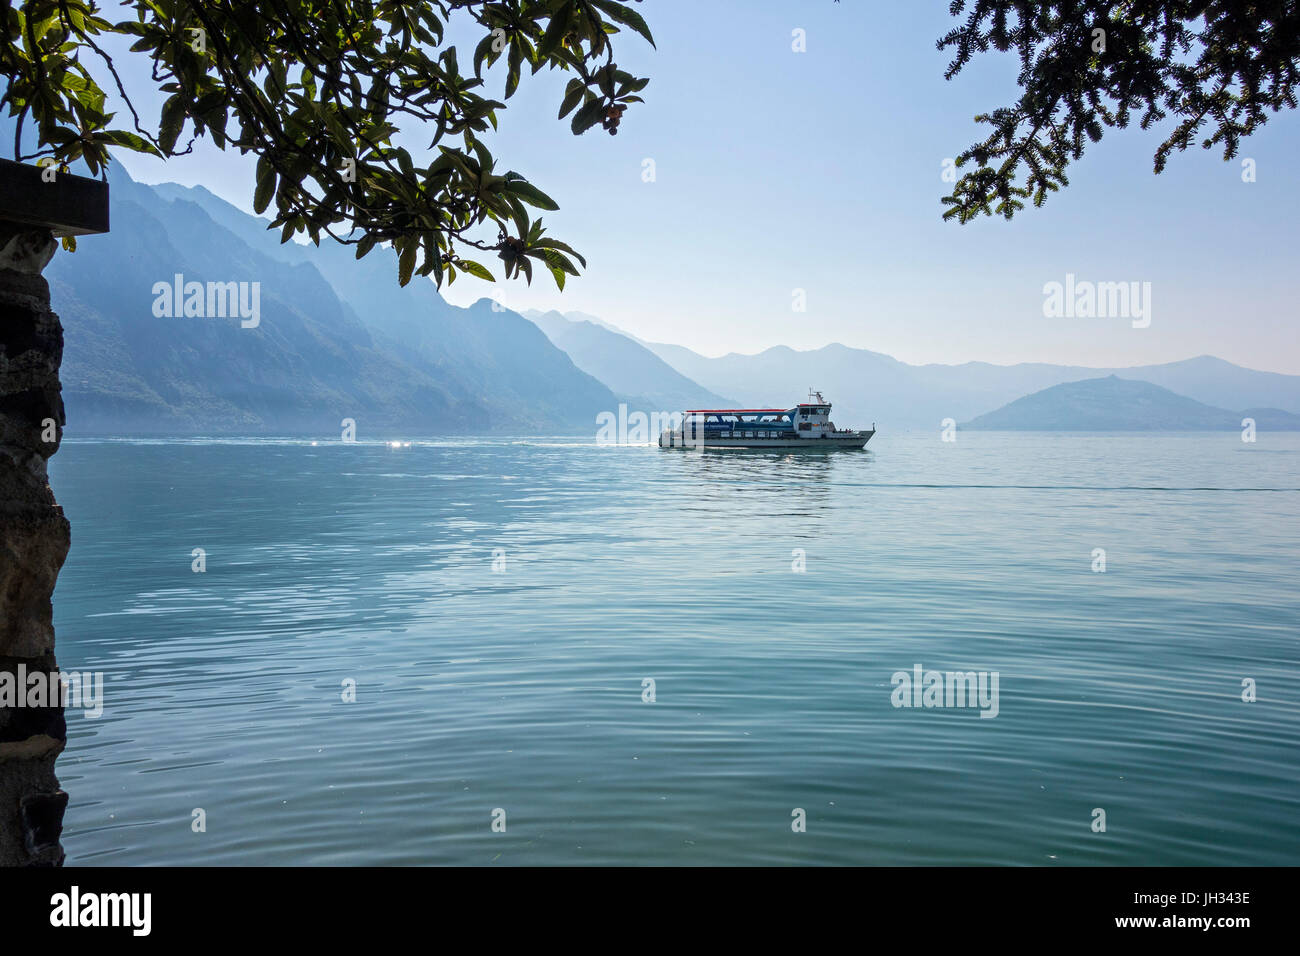 View from Riva Di Solto, Lago Iseo, Italy - Stock Image